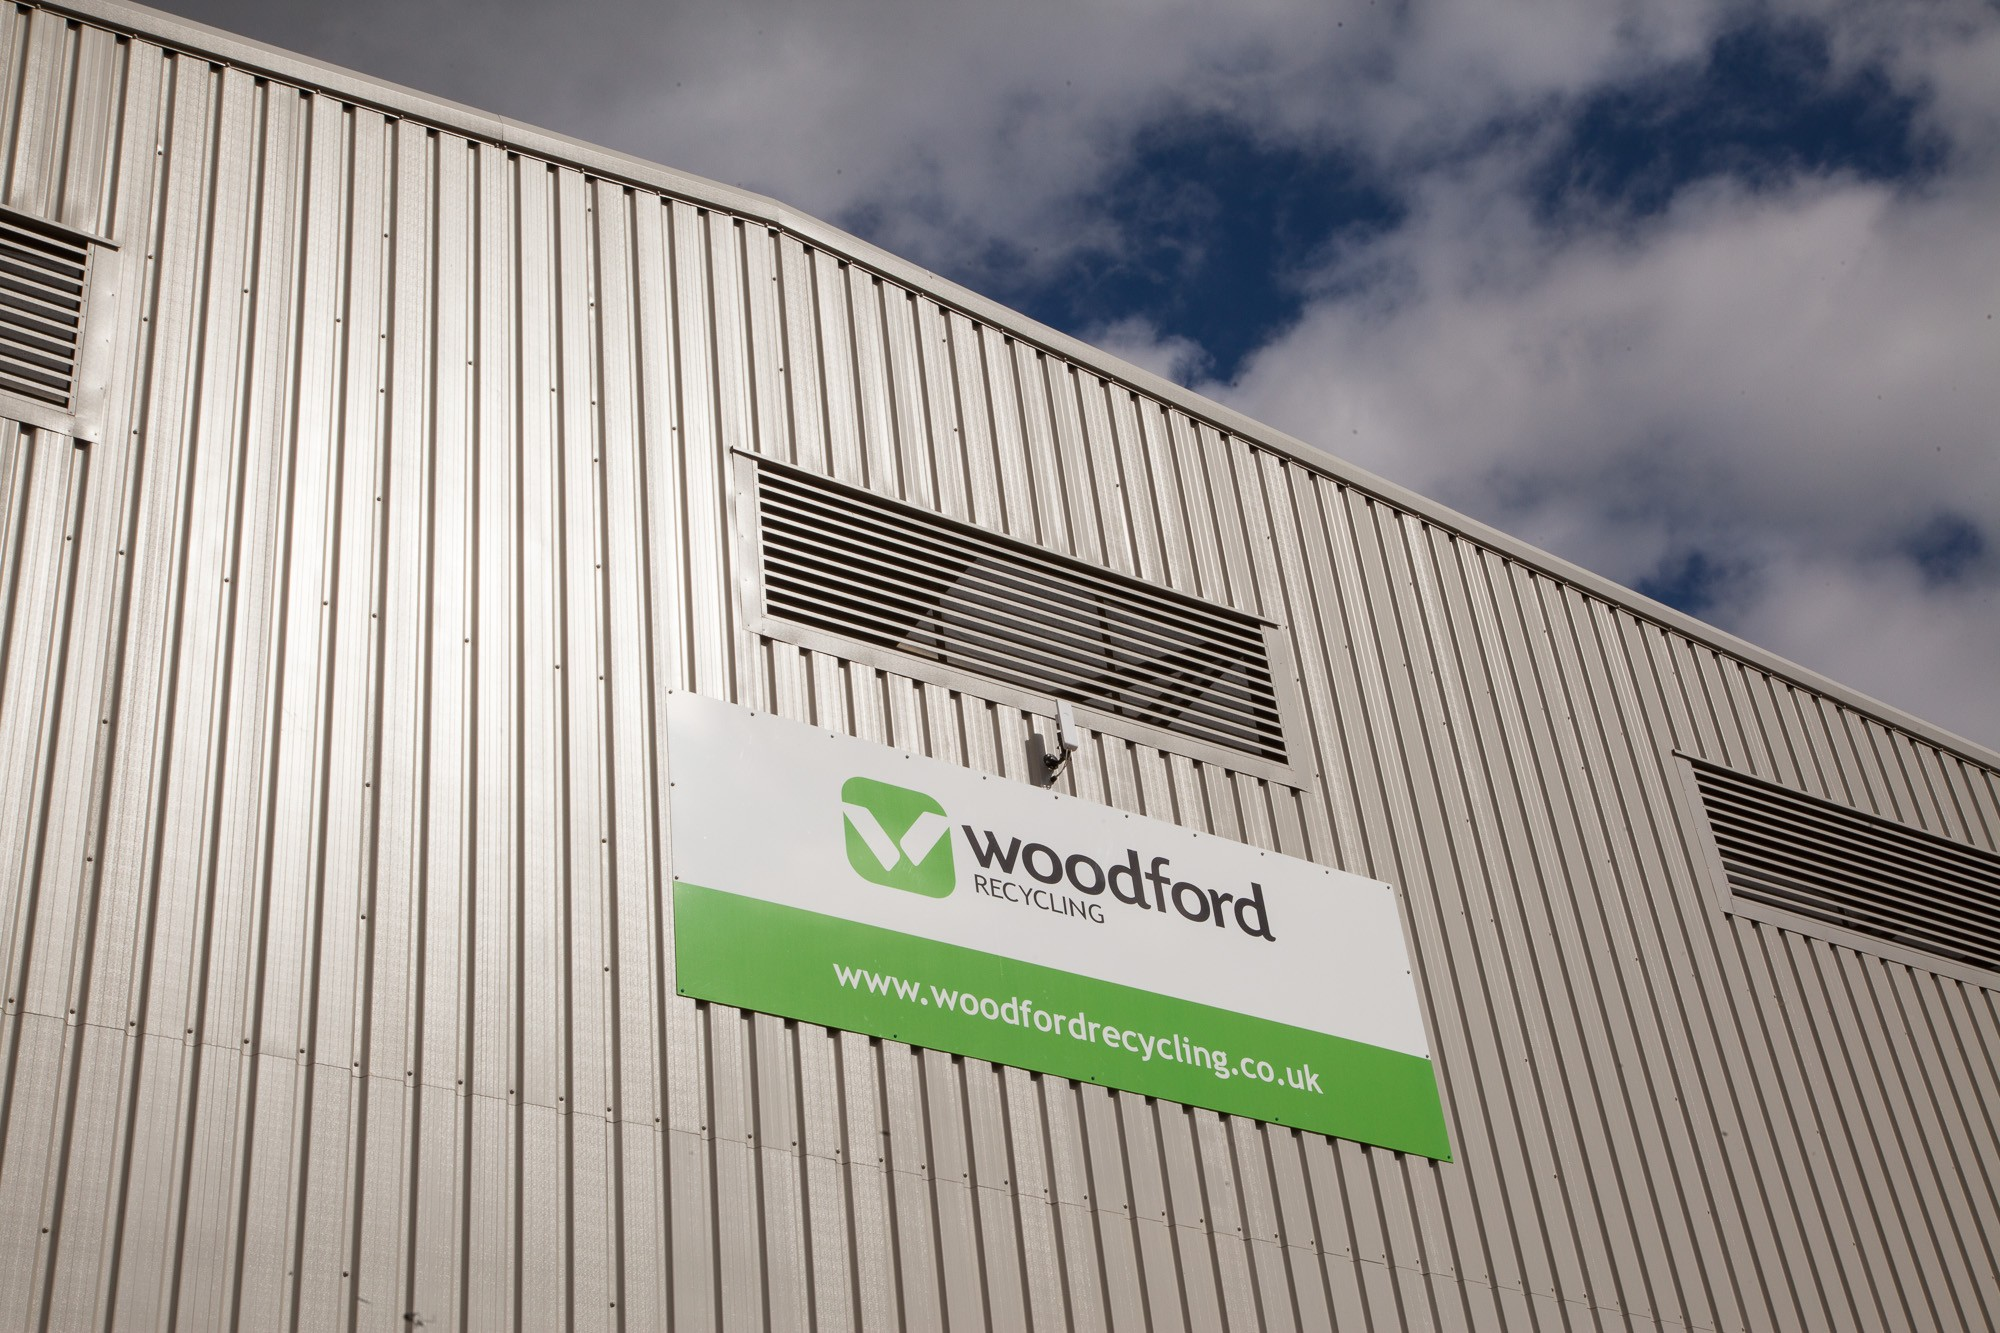 Woodford-recycling-sign